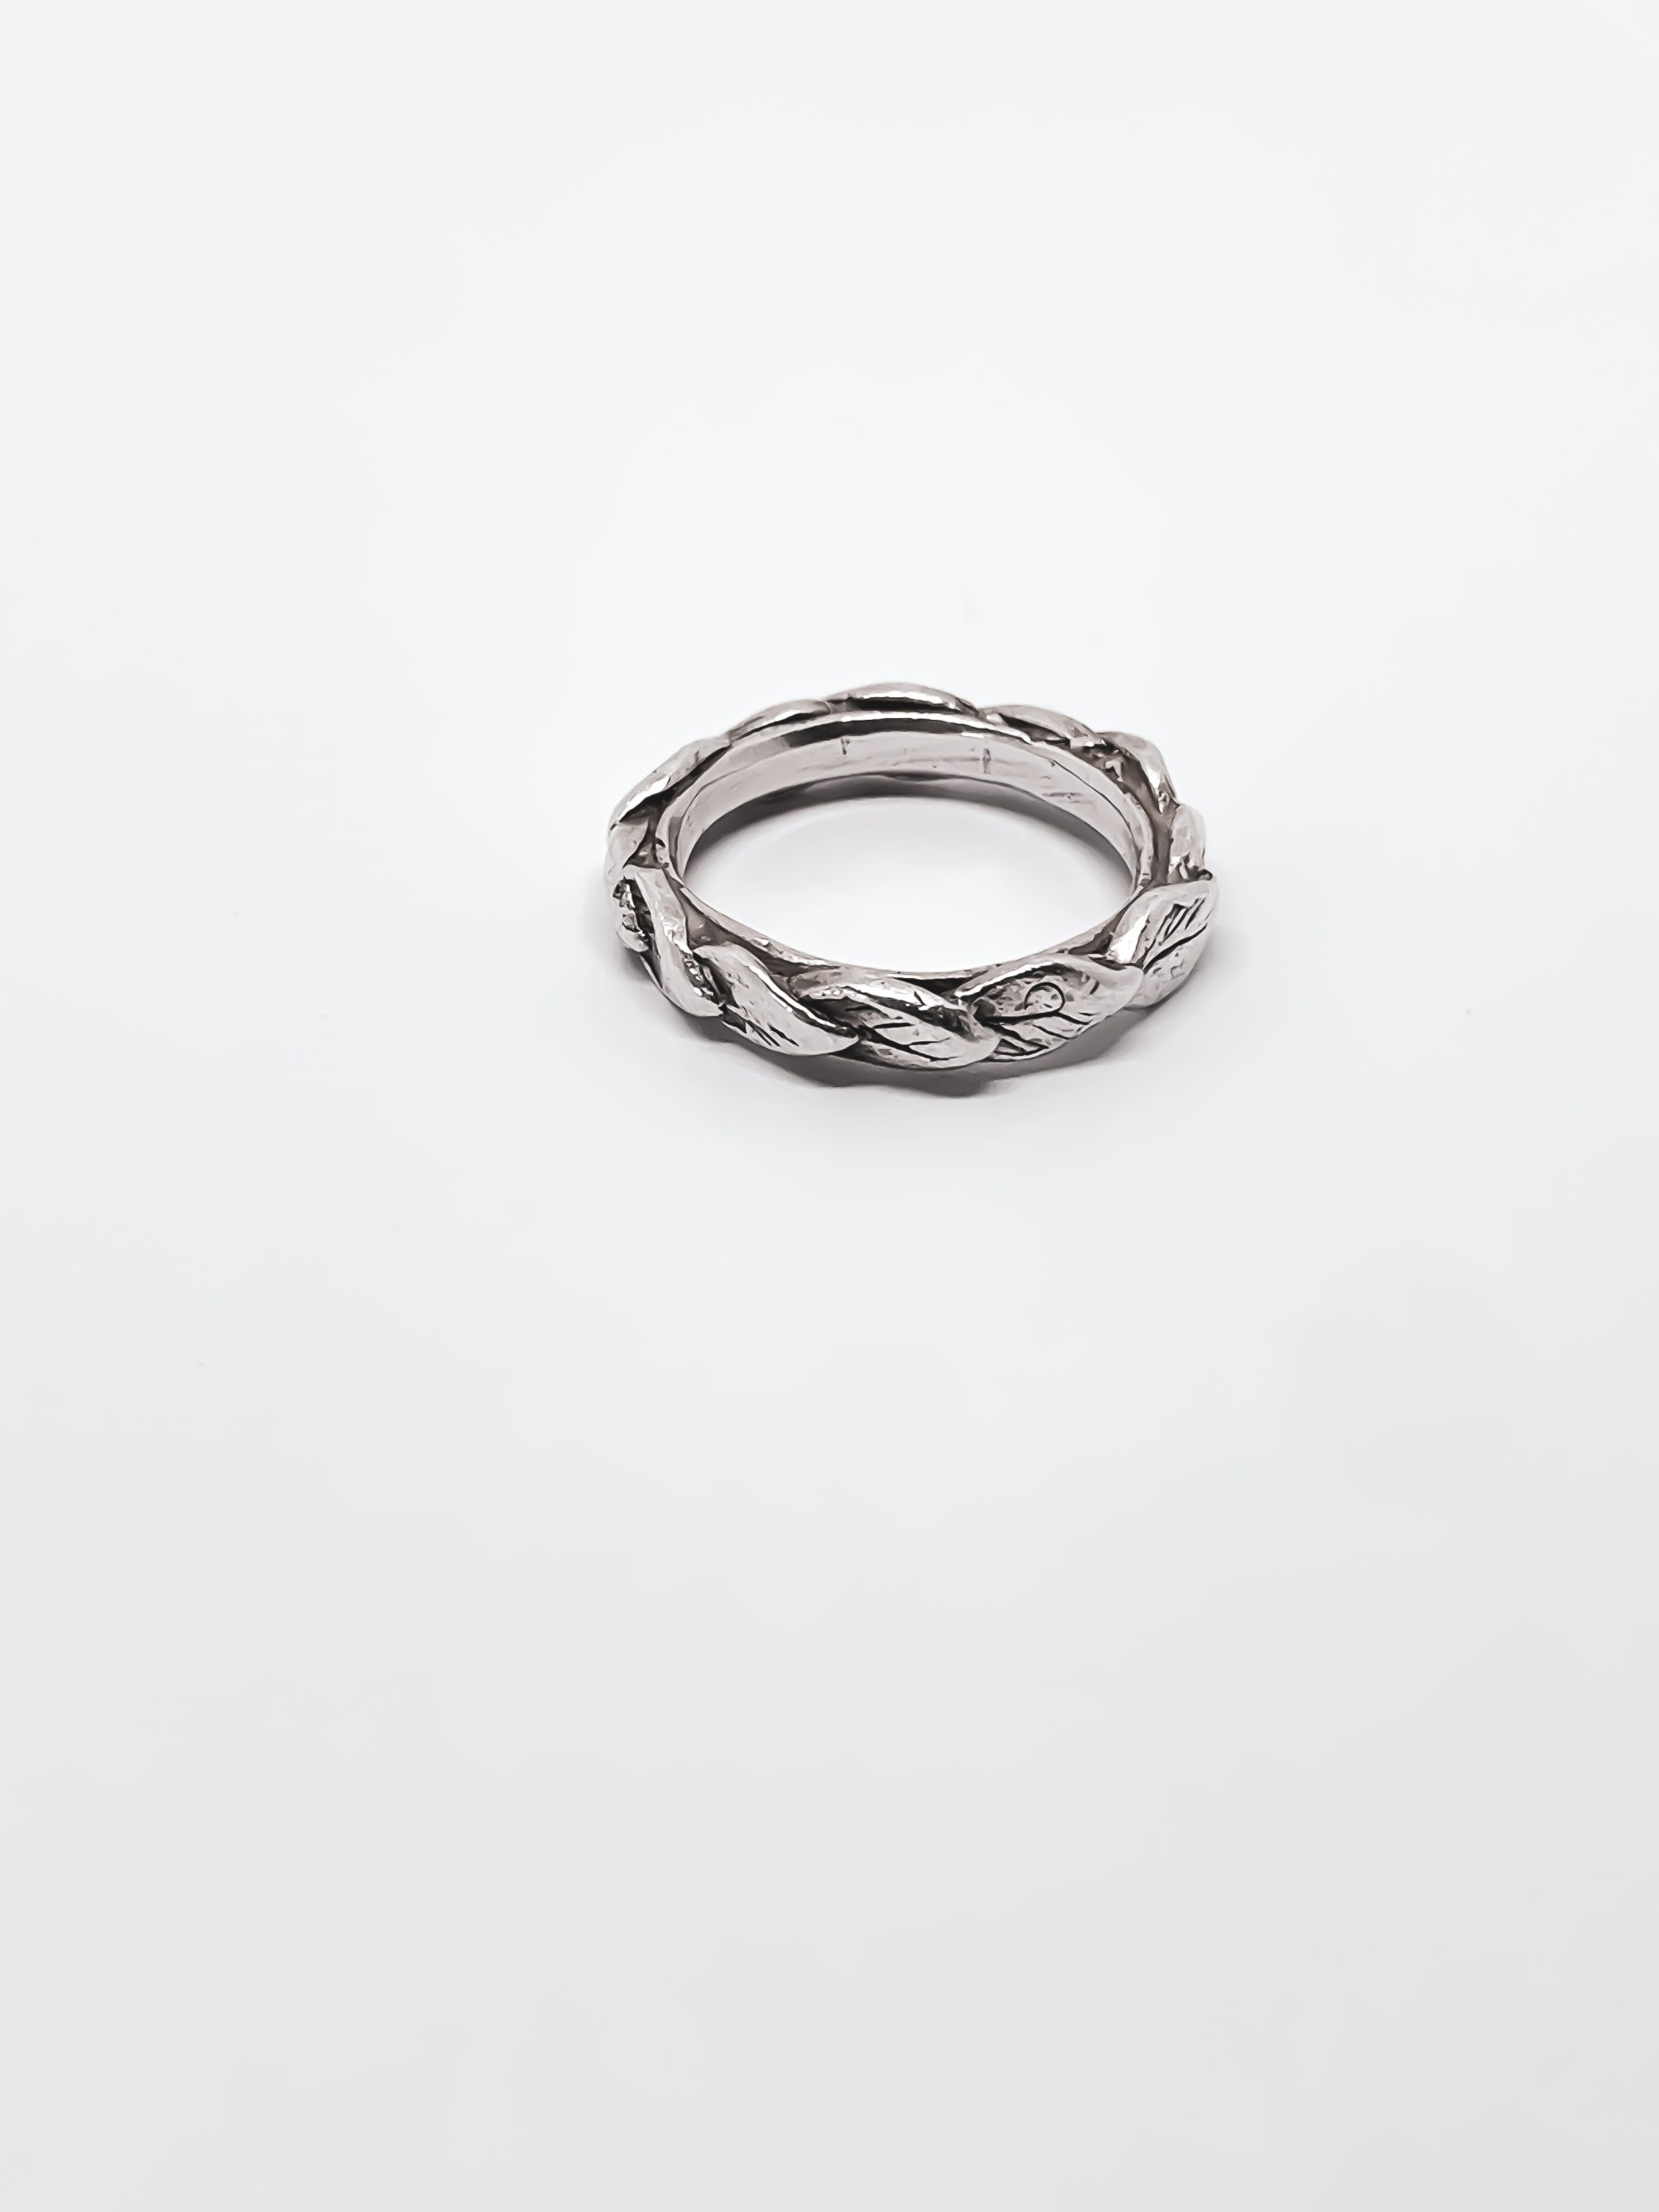 REVEALED – Single Leaf Stacking Ring in Sterling Silver